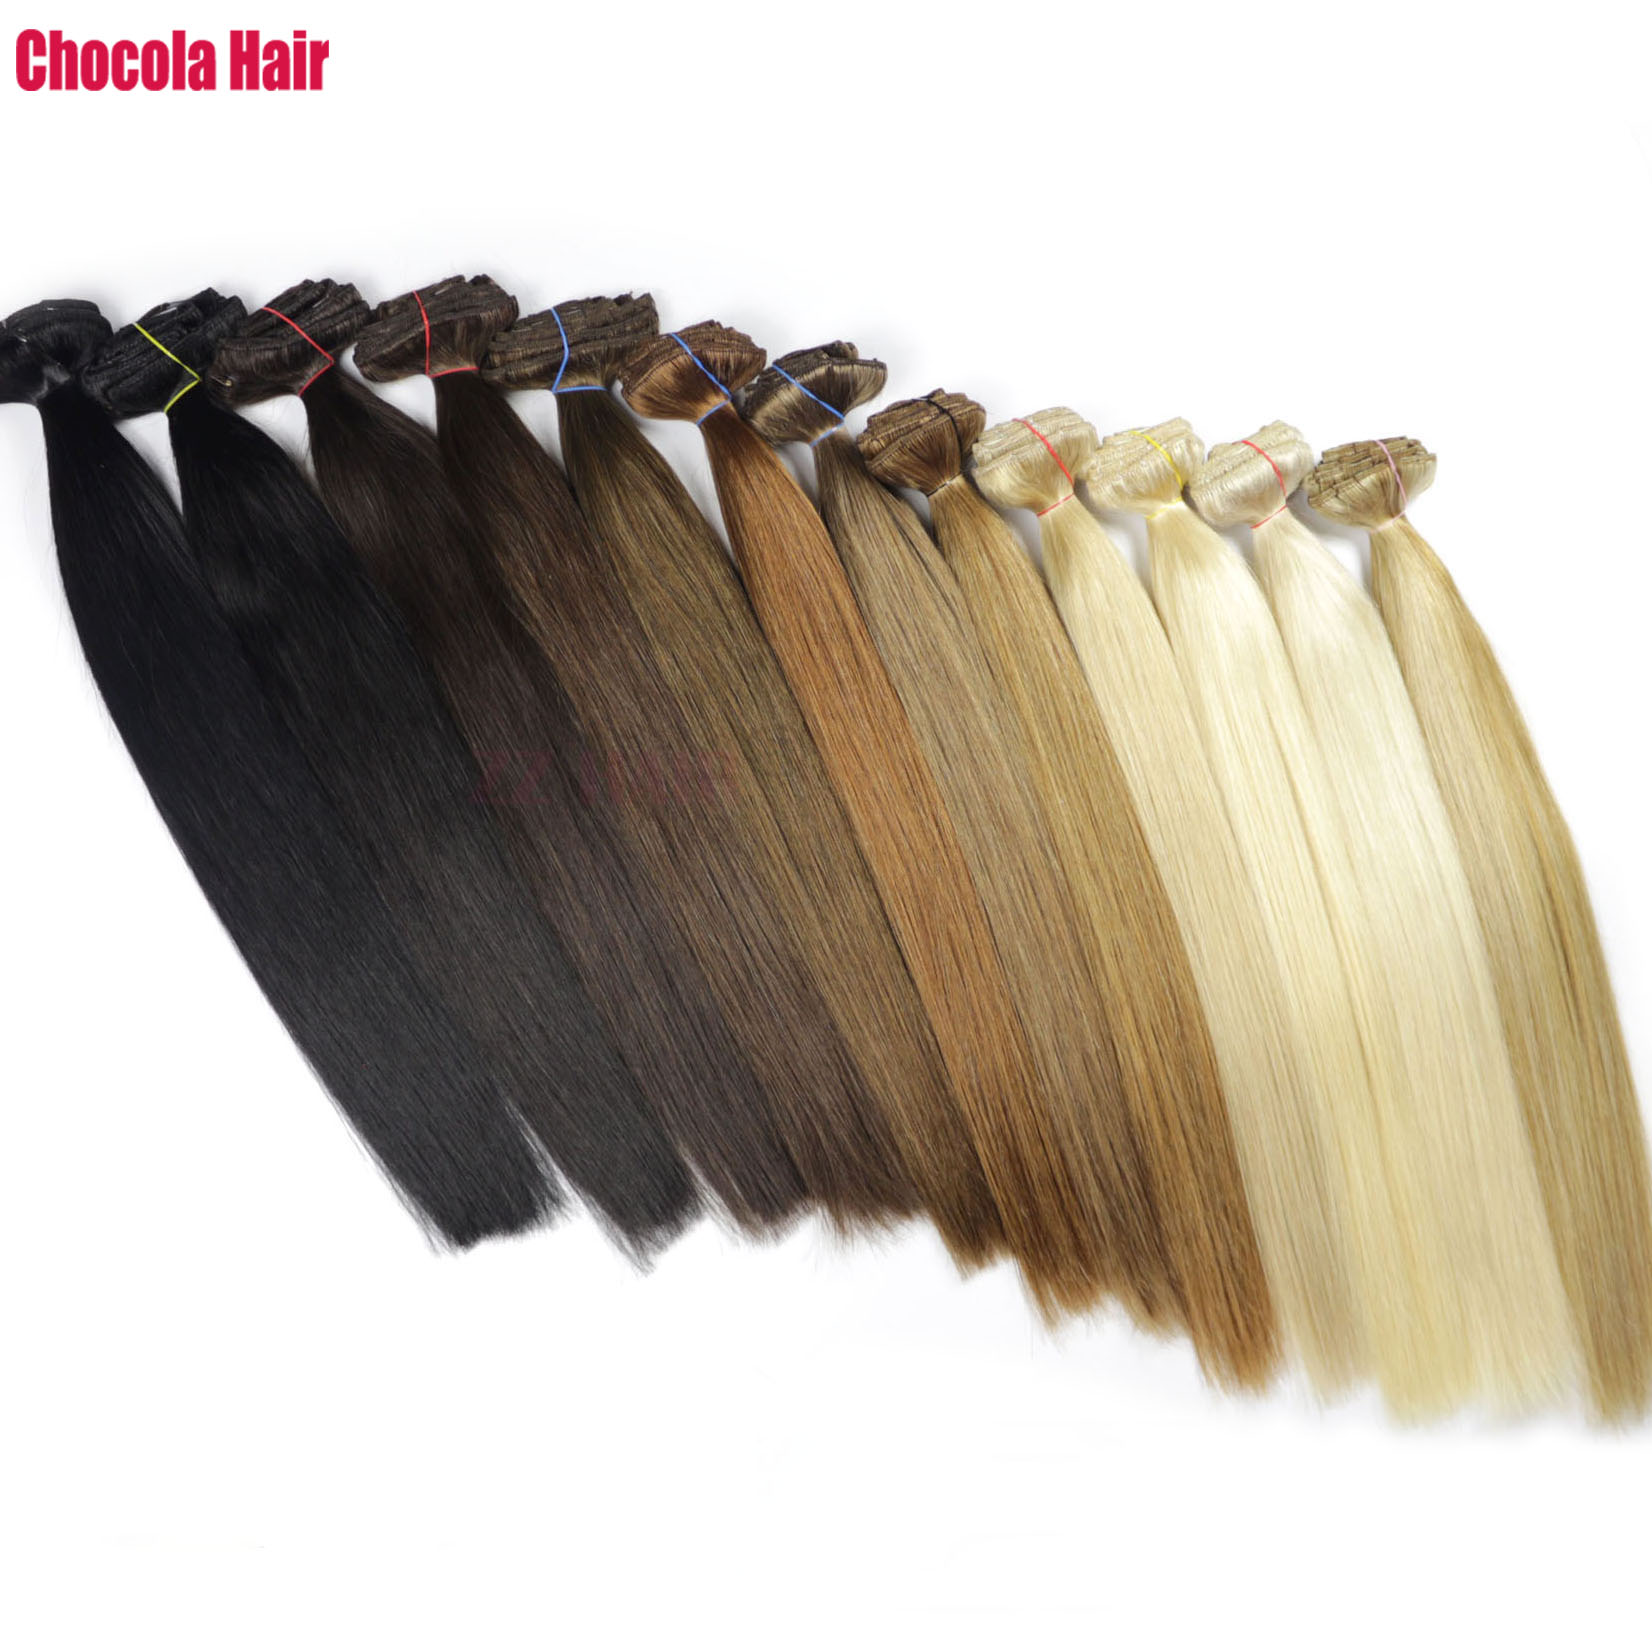 Human-Hair-Extensions Clip-In Remy-Hair Straight Natural Brazilian 180g Set 10pcs 16-28-Machine-Made title=